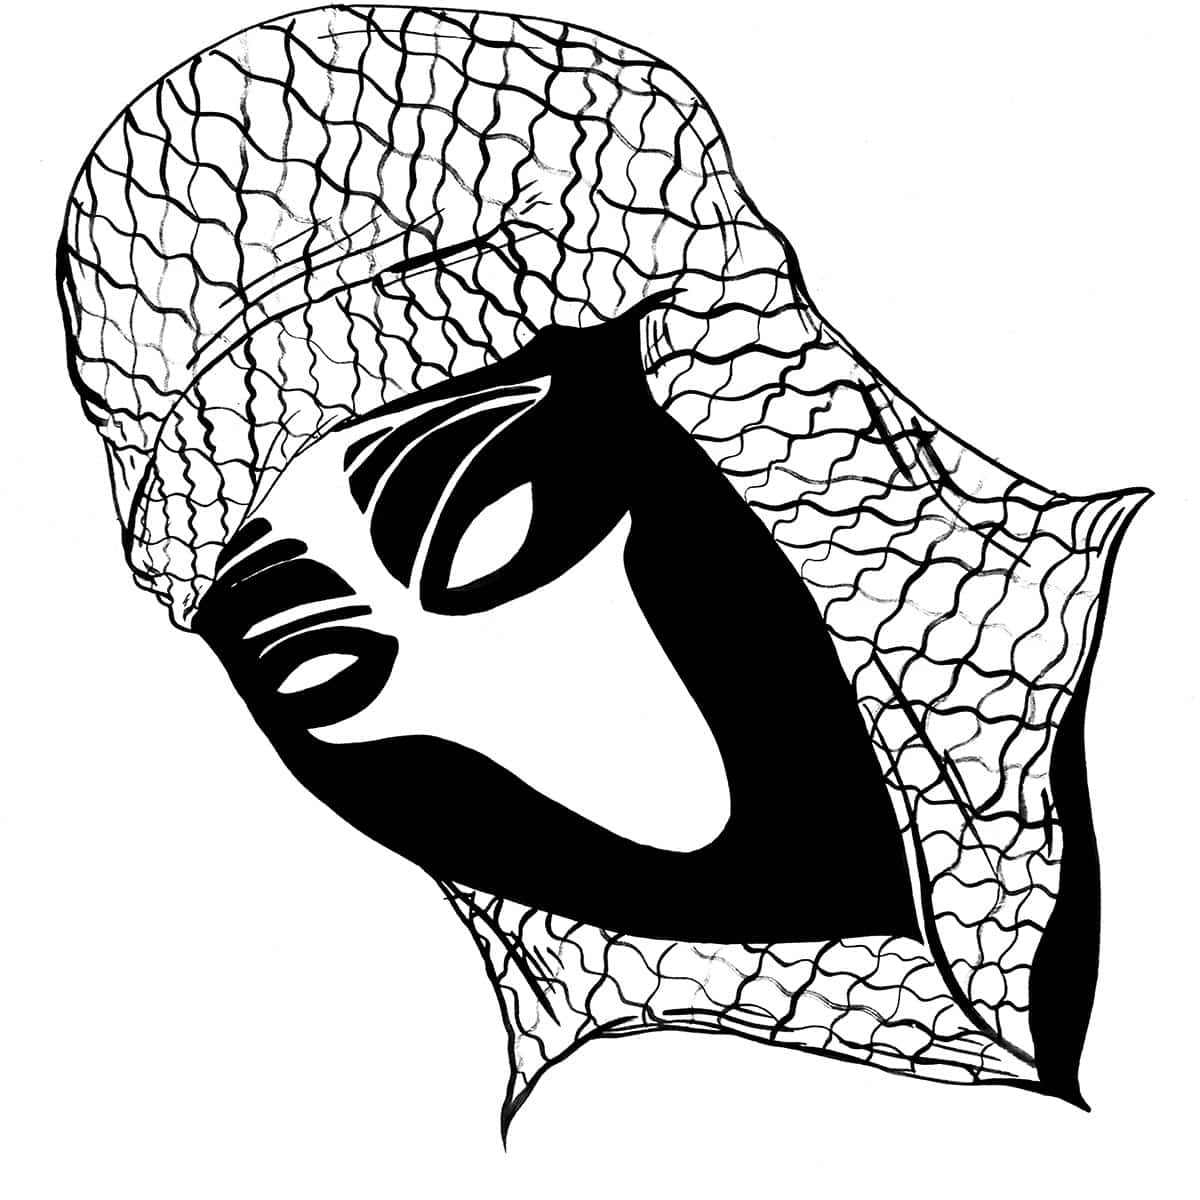 drawing of alien-like face wearing head scarf.